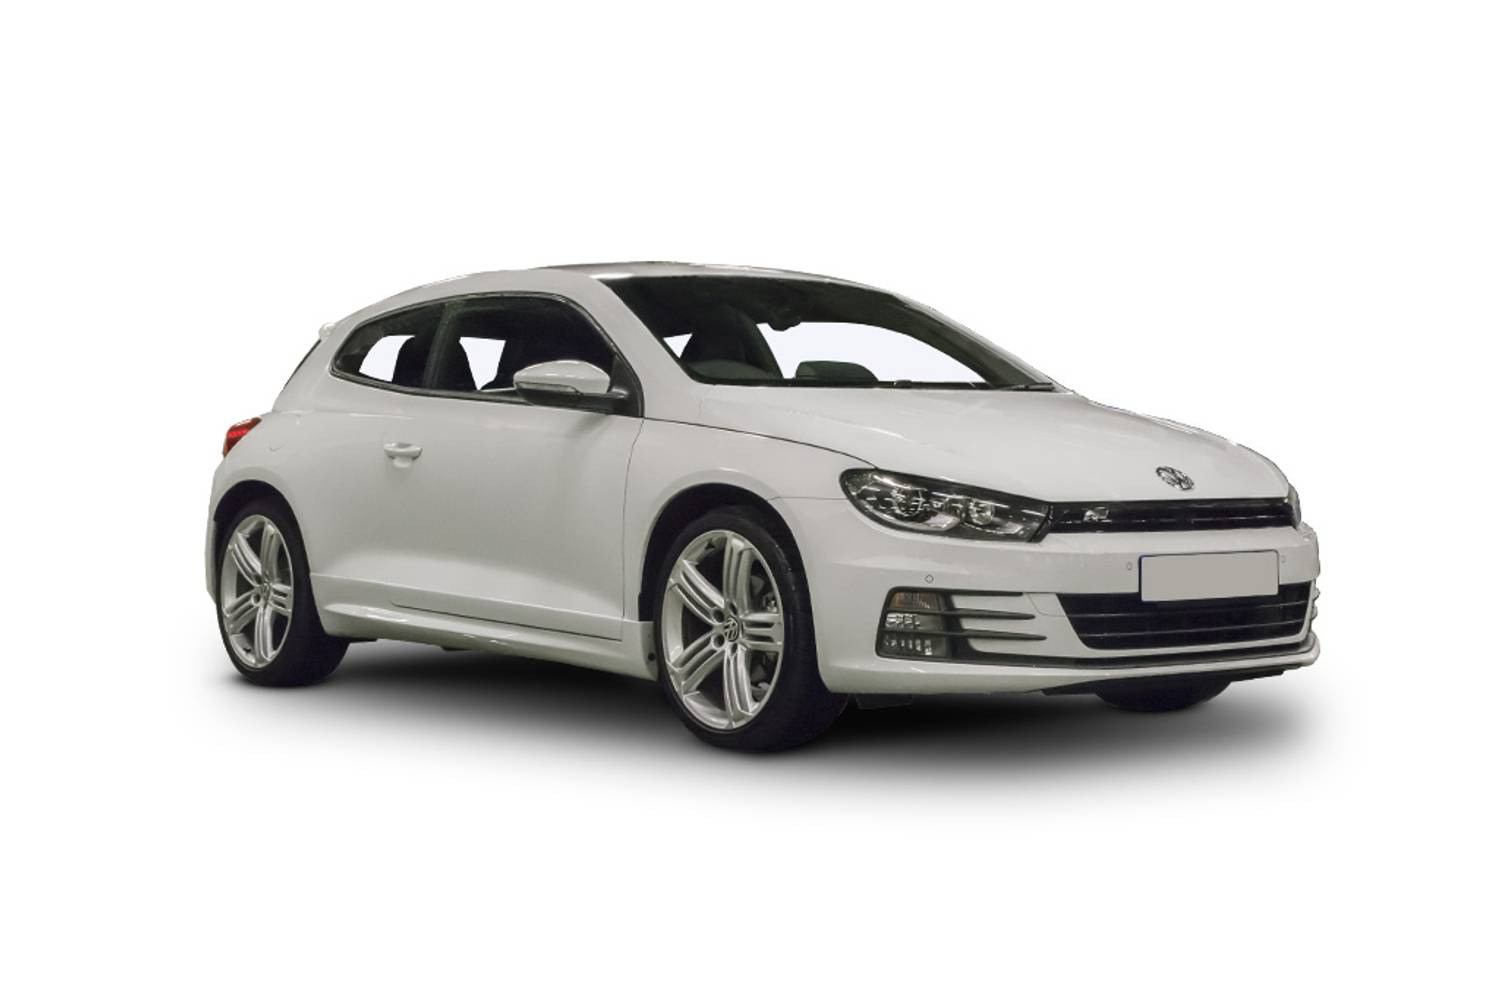 Volkswagen Scirocco Coupe 3dr